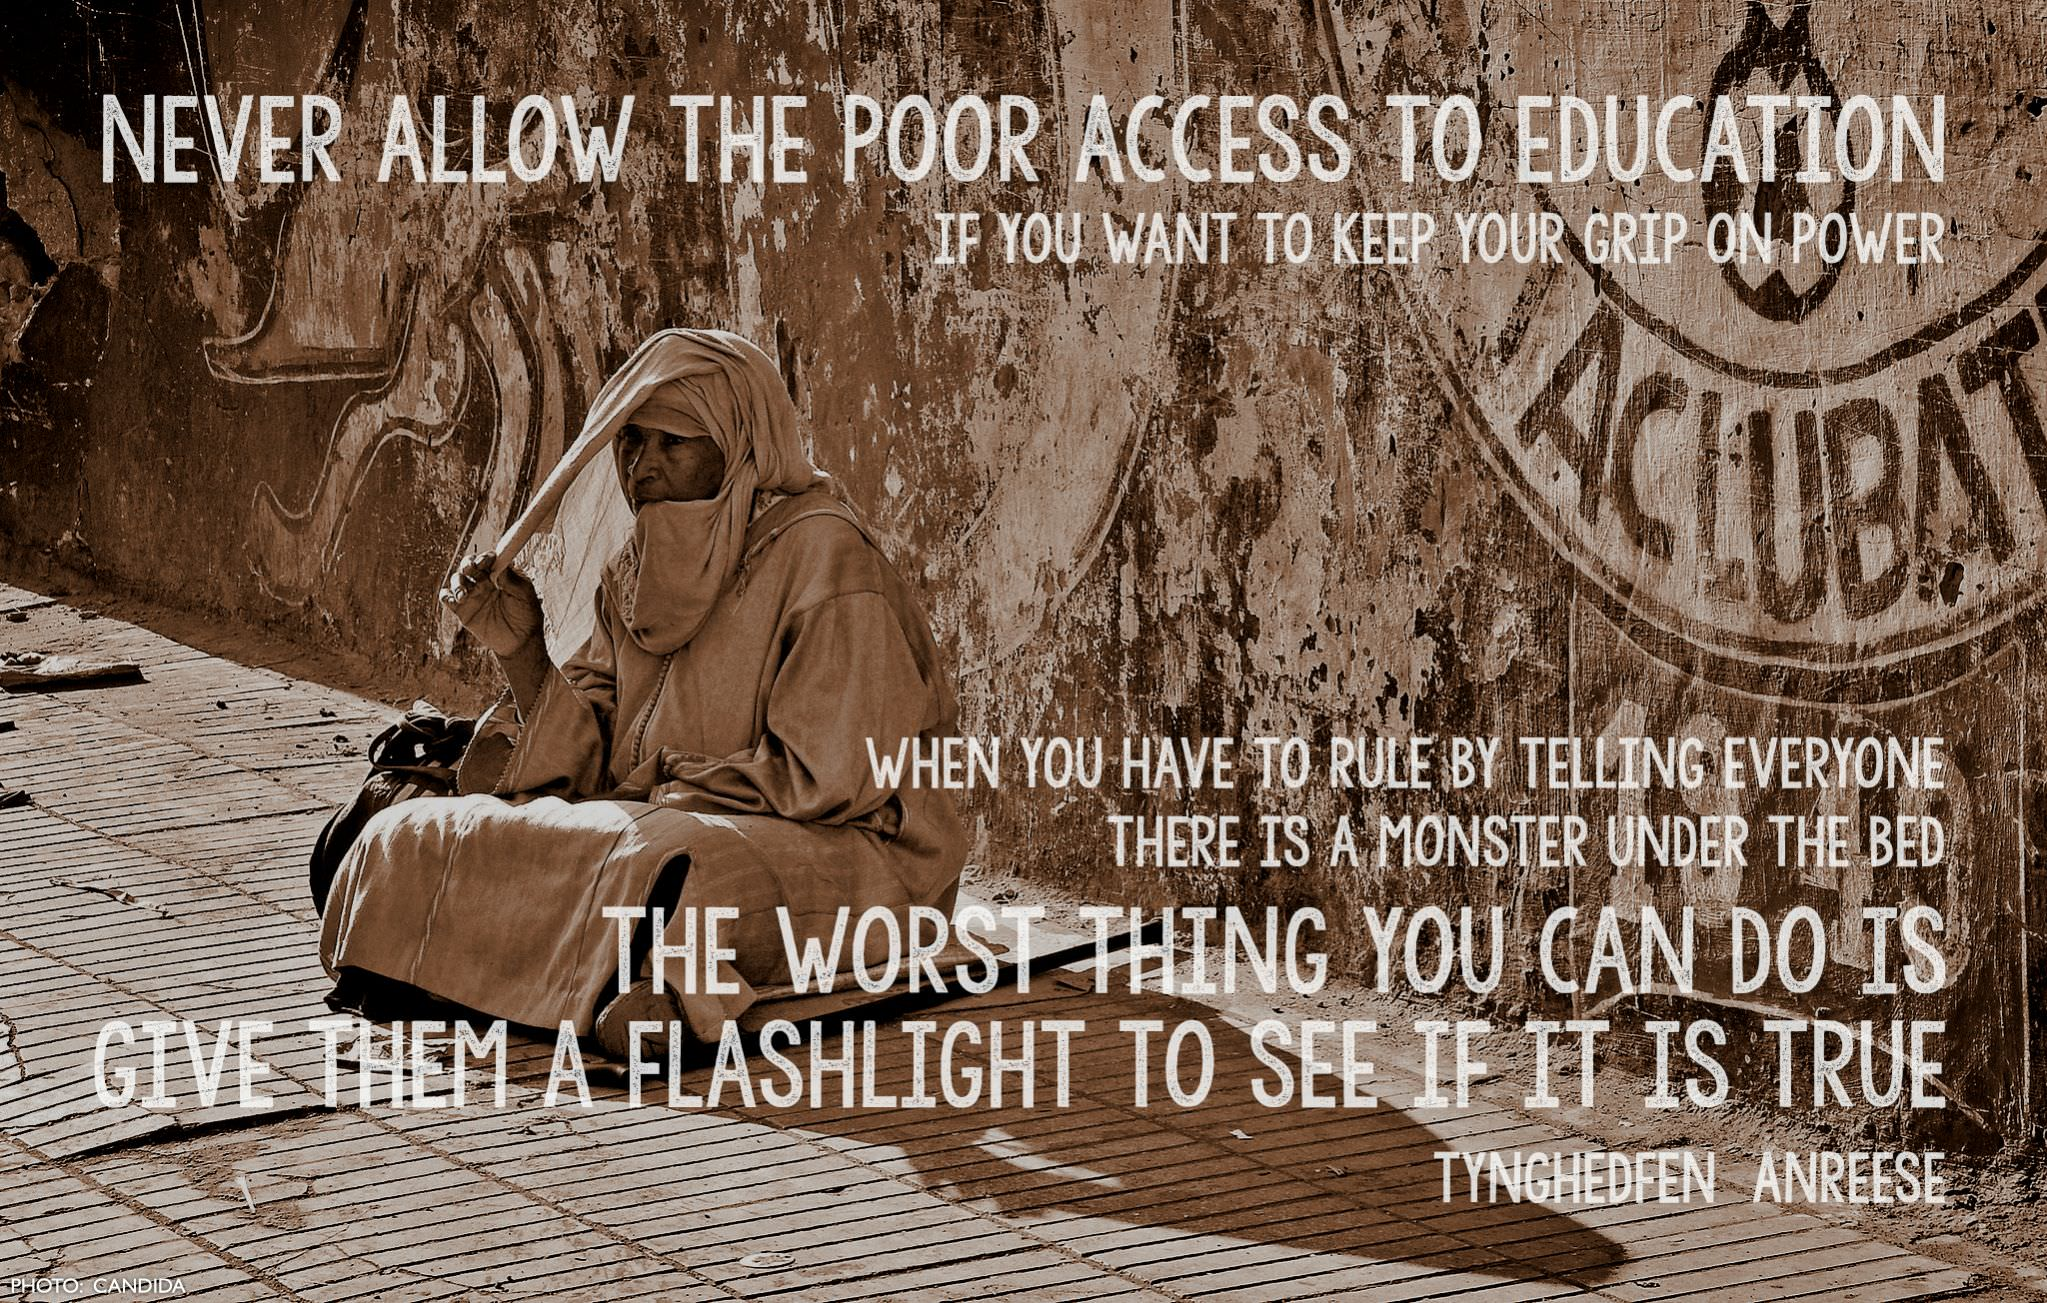 """Never allow the poor access to education…"" ~ Tynghedfen Anreese 2048 x 1304"